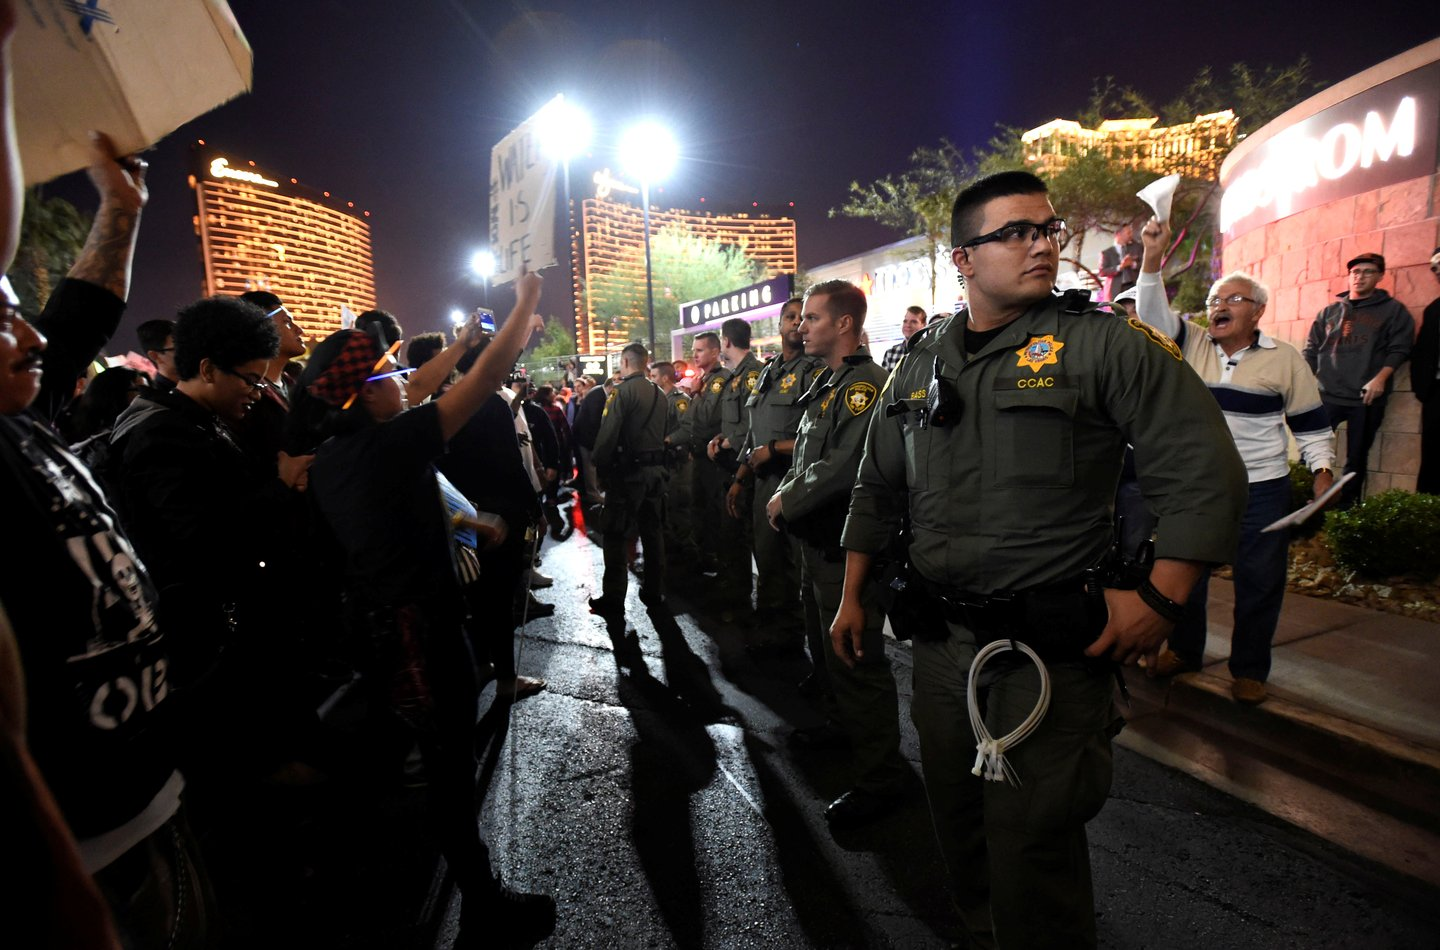 Las Vegas police stand between protesters